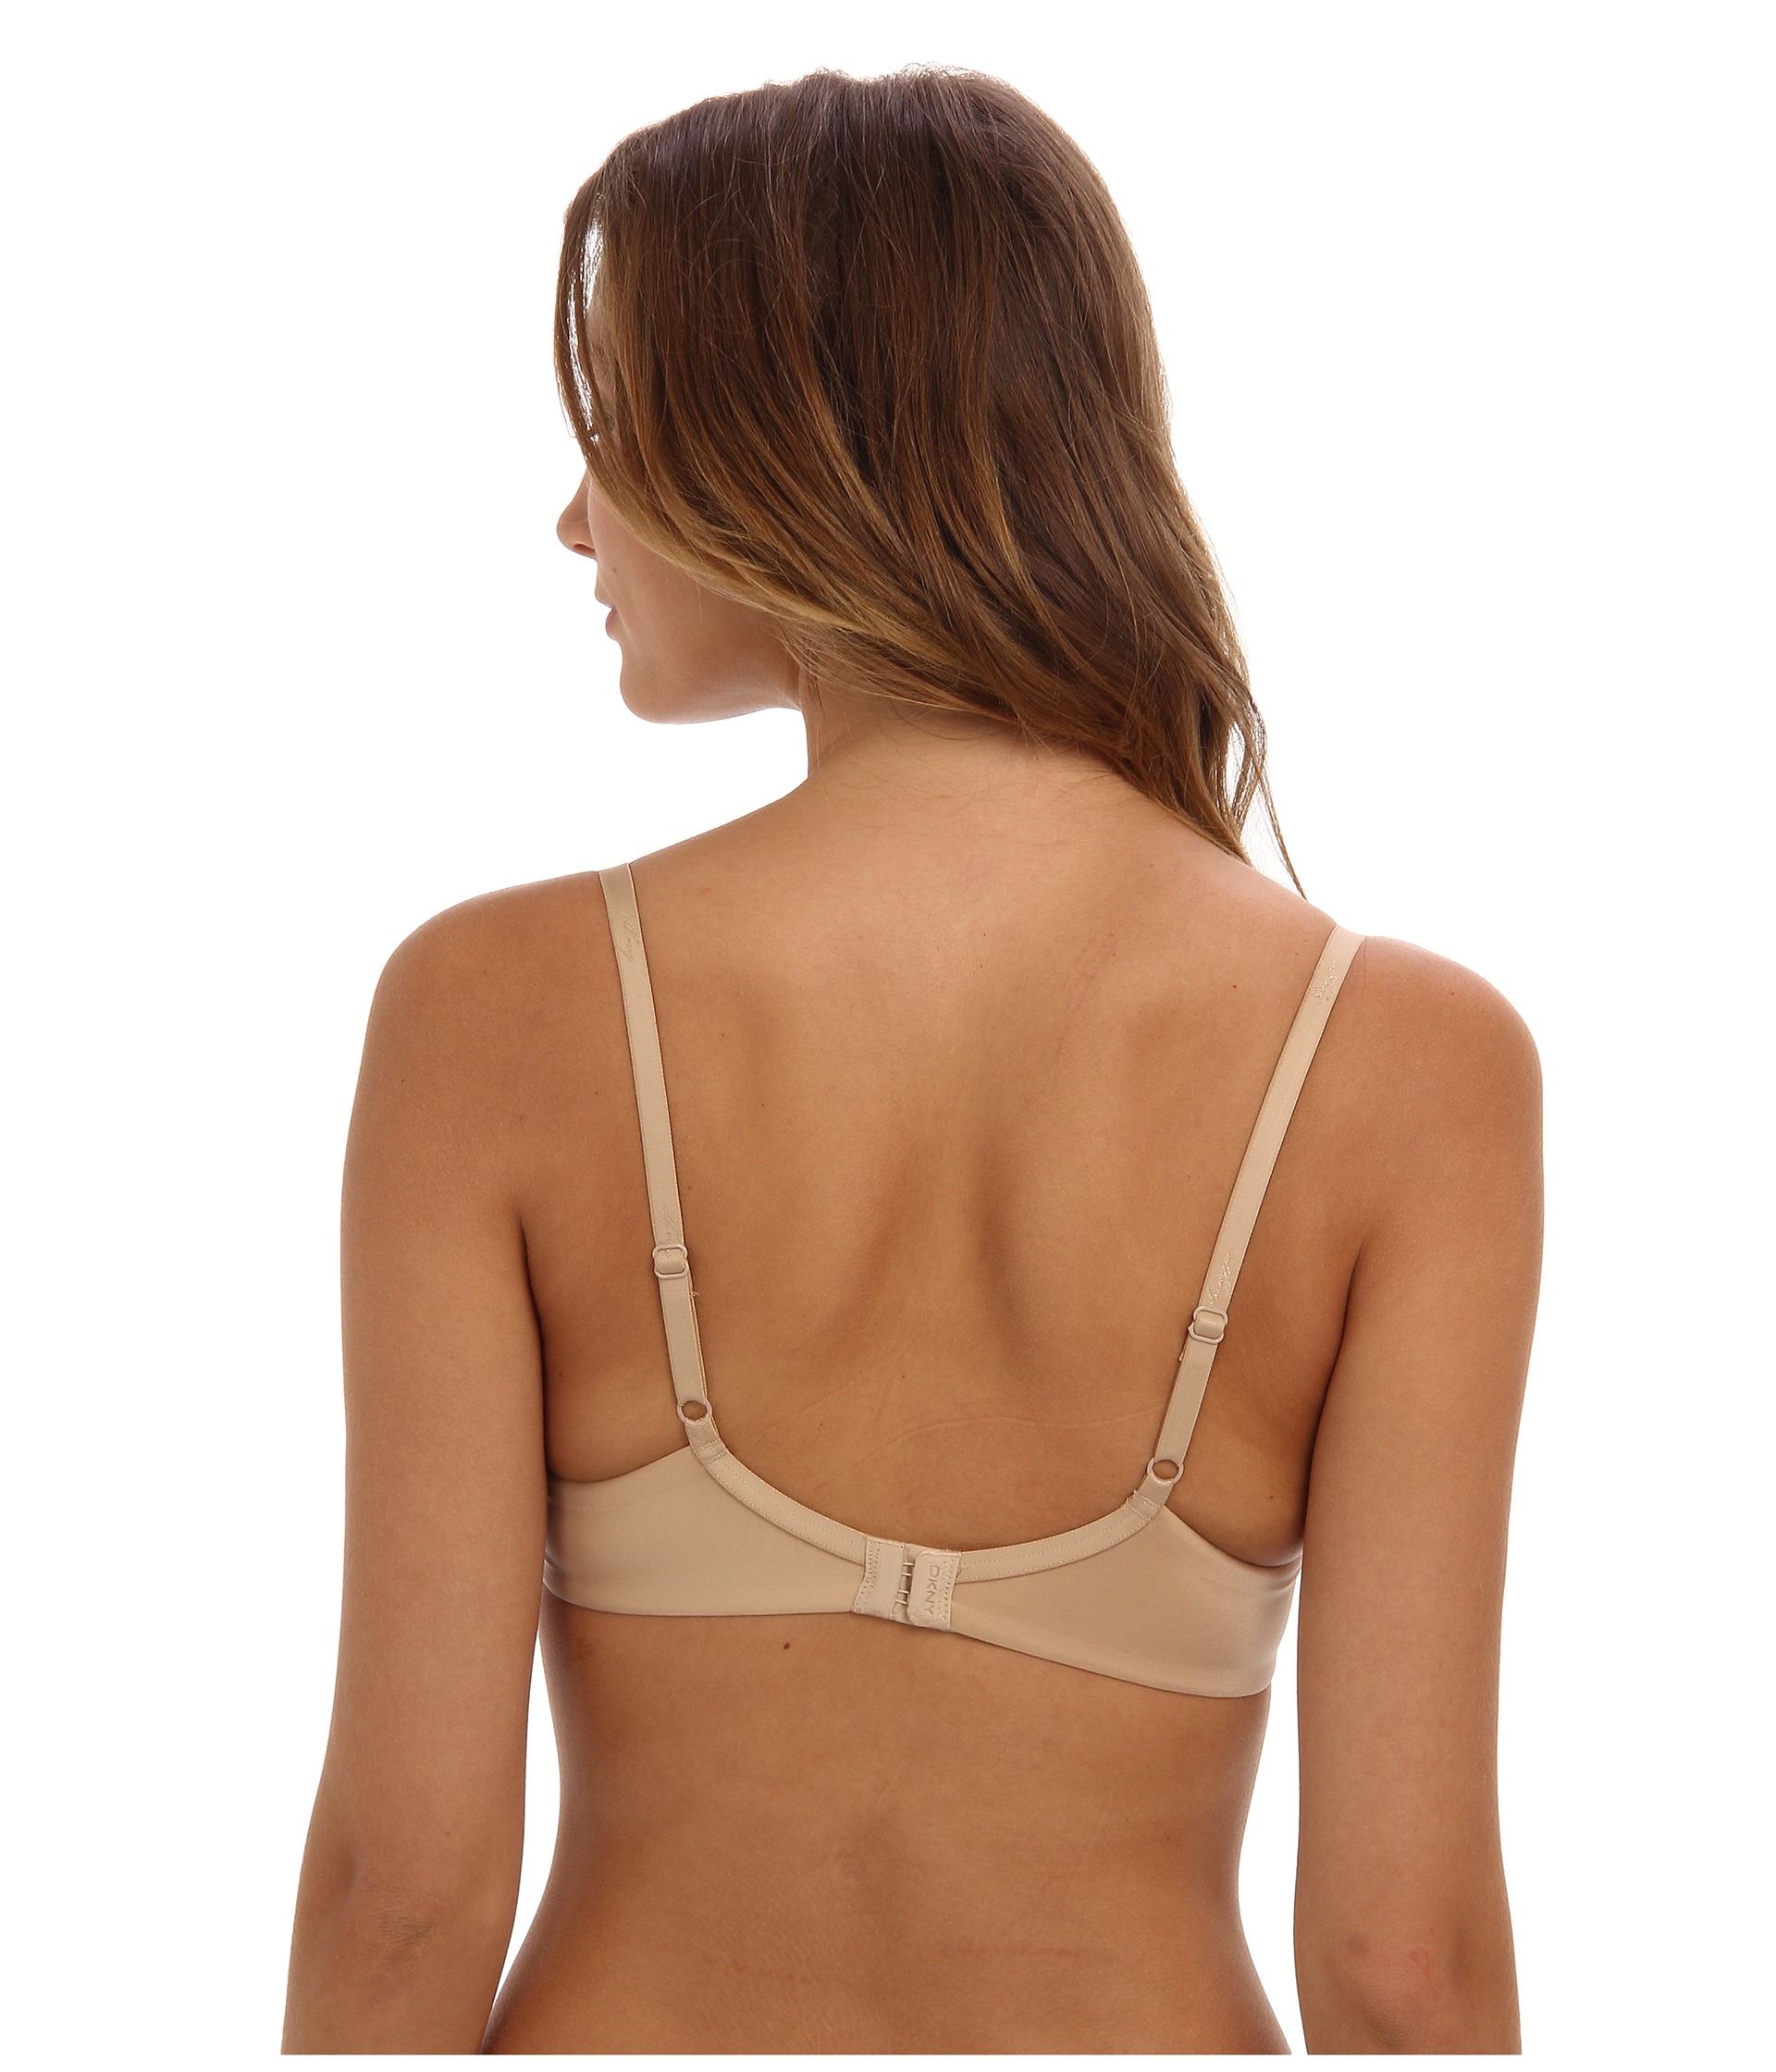 Dkny Simply Perfect Demi Bra 453266 in Metallic